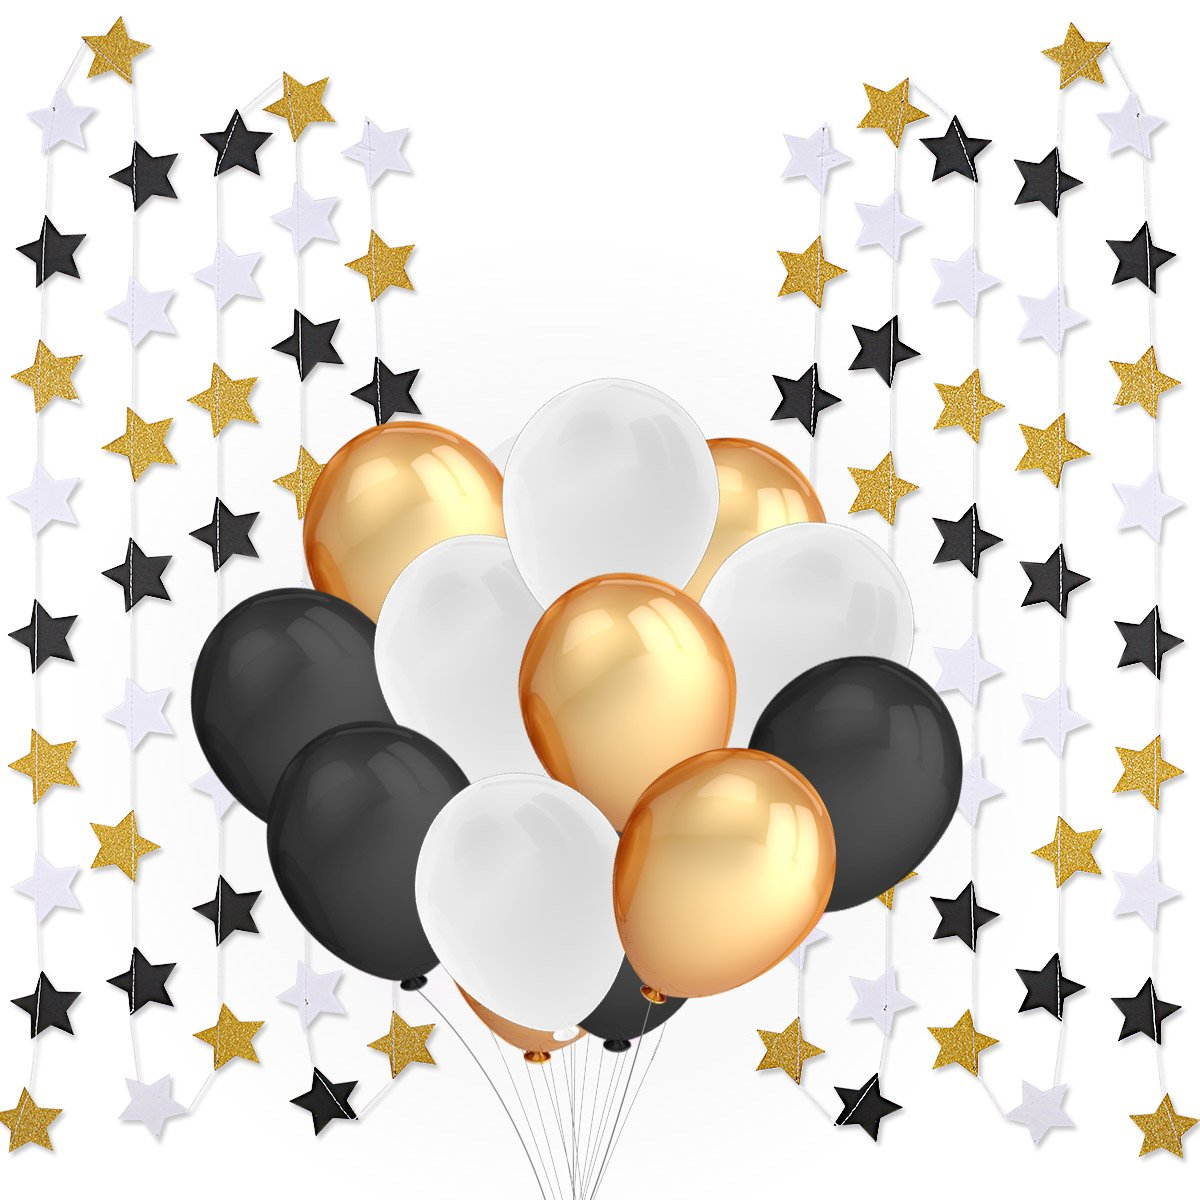 Party Supplies and Party Decorations- 100 Pcs 12 inches Latex Party Balloons and 2 Pcs Twinkle Star Garland - Perfect for All Party events, Wedding Party, Retirement Party, Baby Shower, Birthda Party